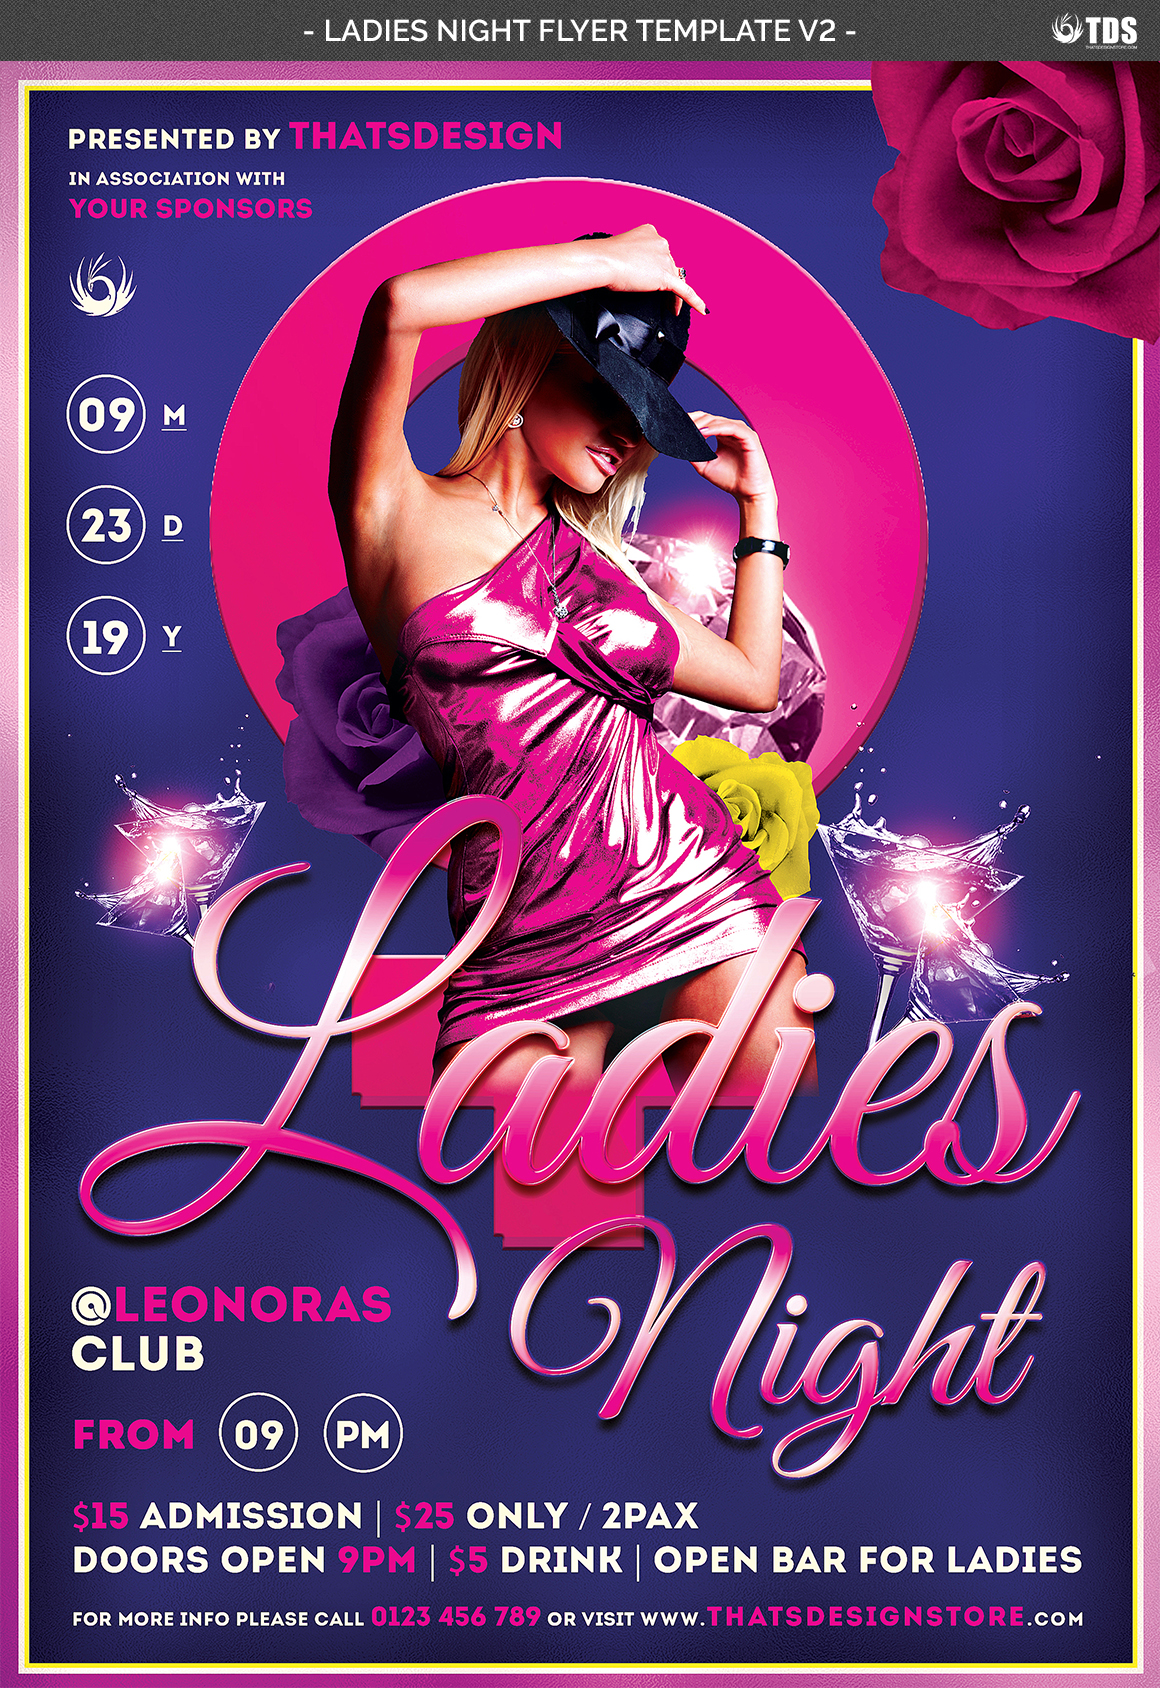 crummey letter template - ladies night flyer template v2 by tdsto design bundles